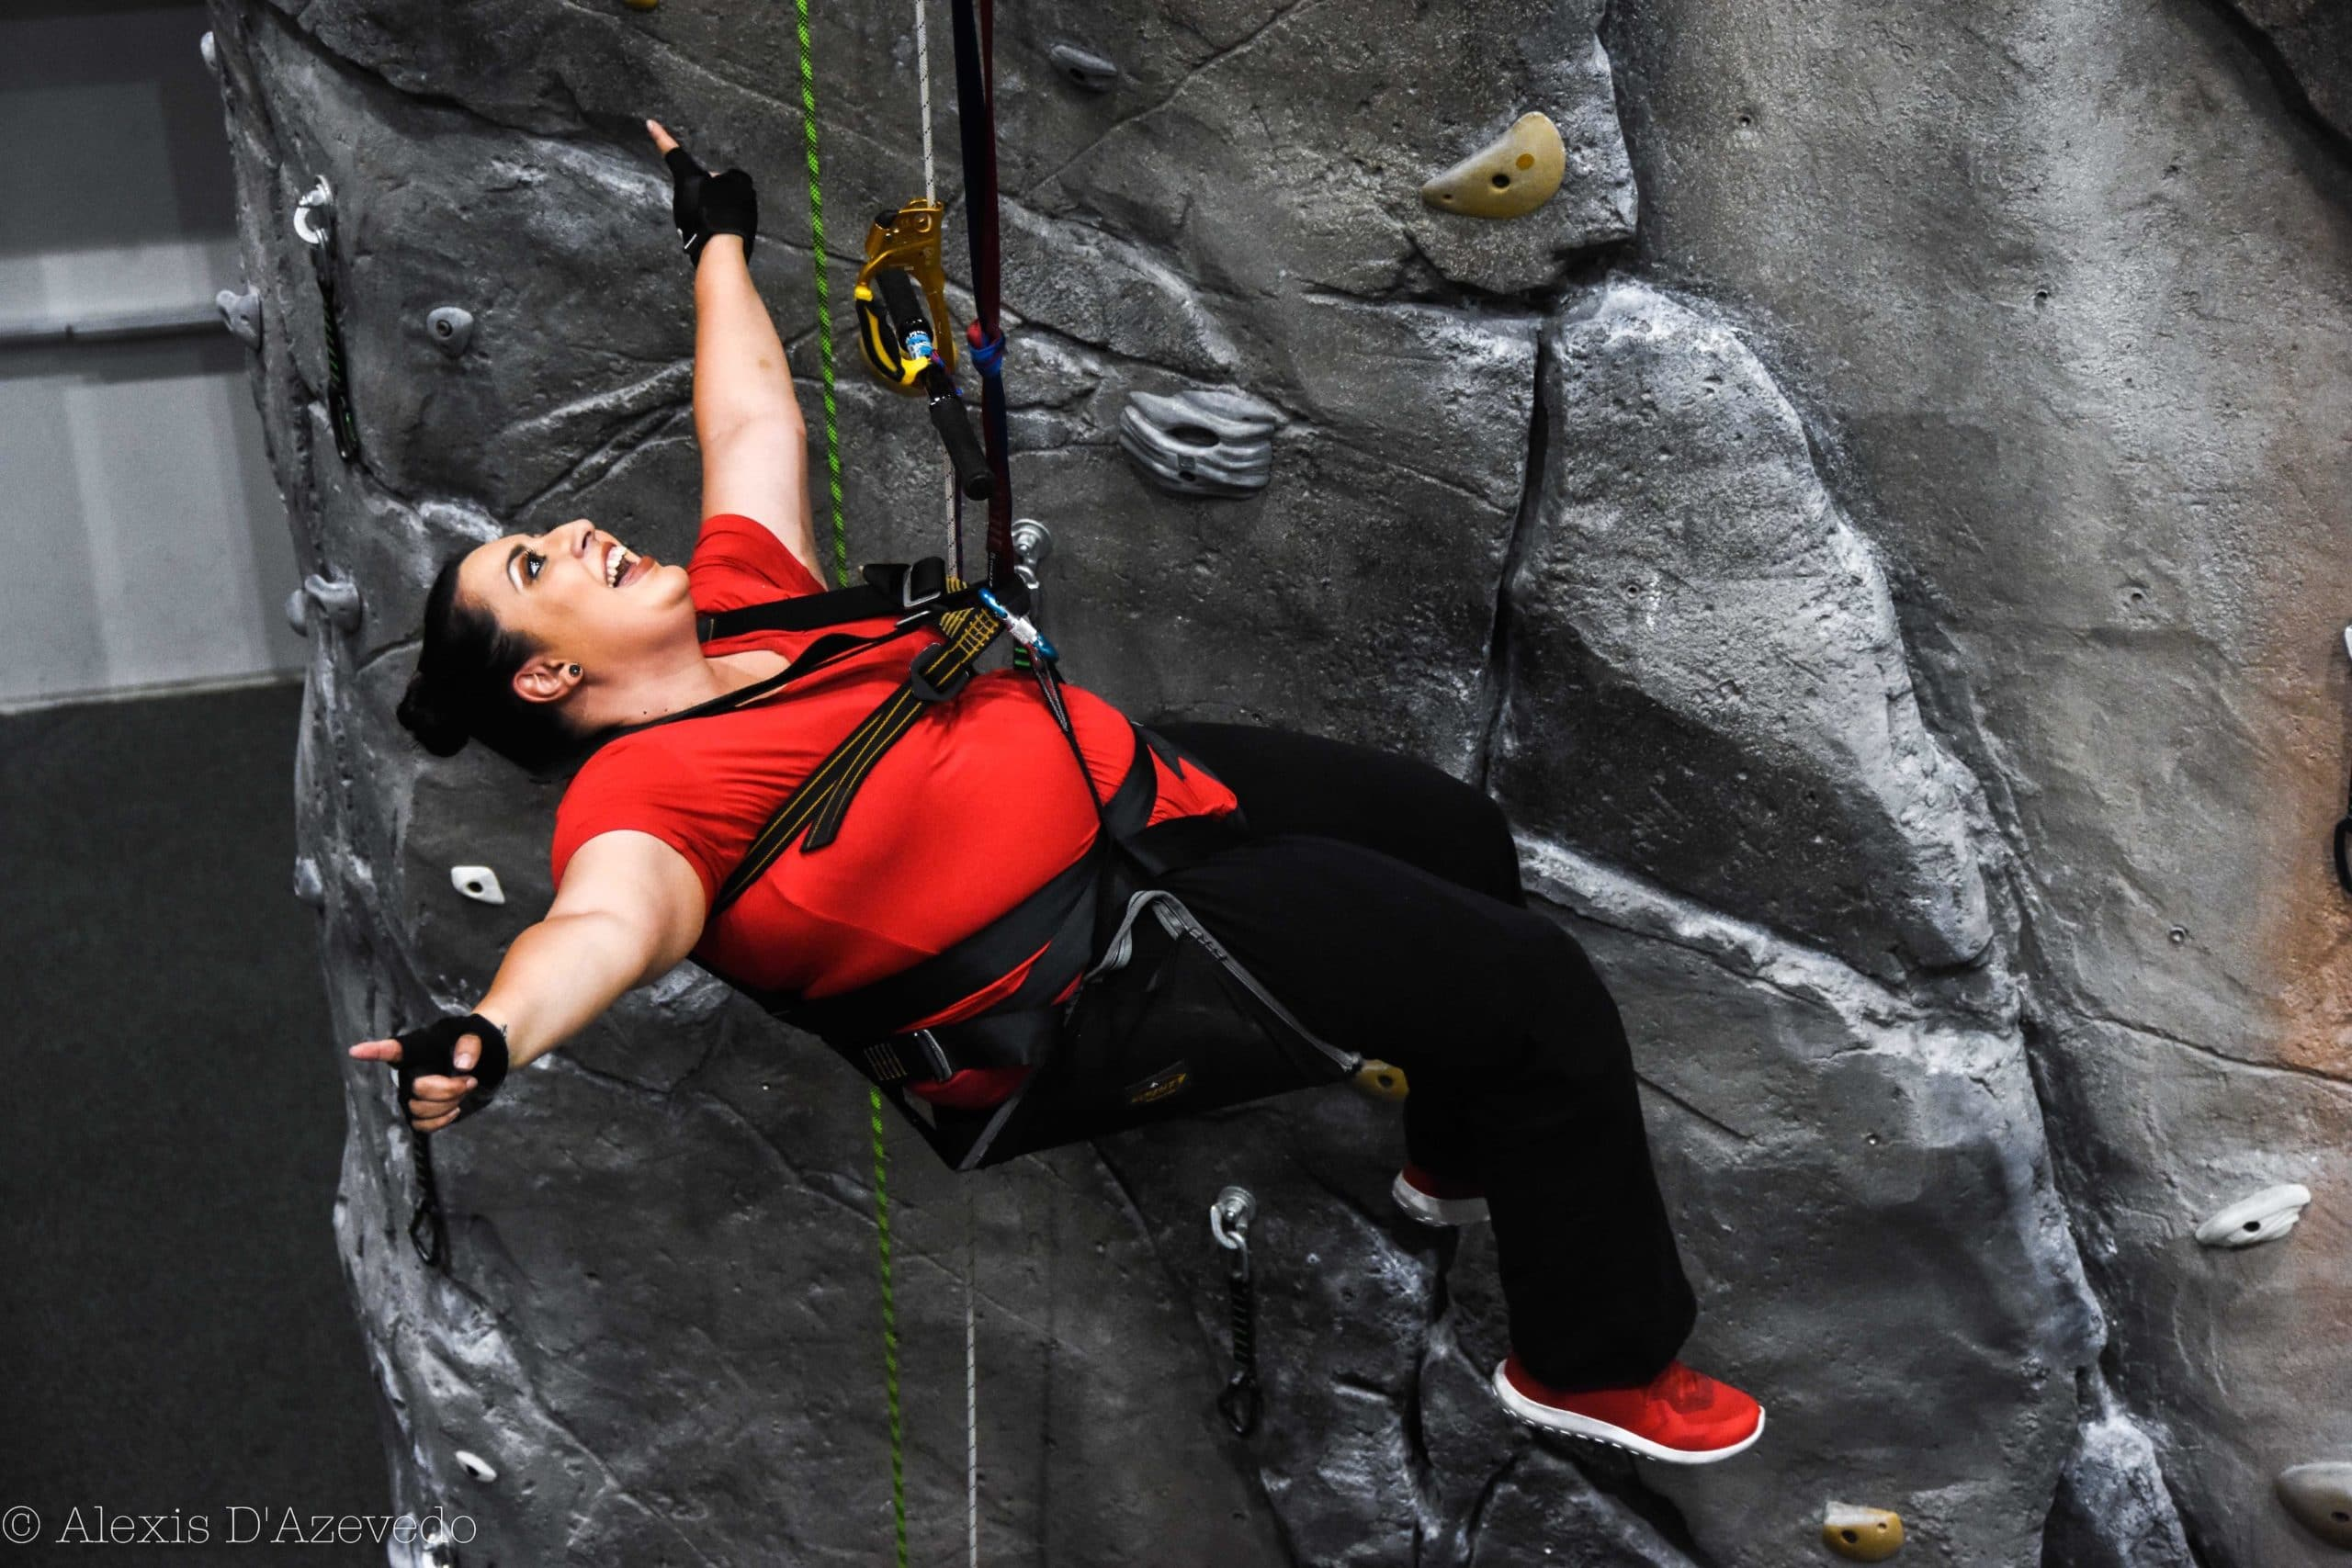 A woman outstretches her arms and leans back in her climbing chair as if to celebrate making it up the indoor wall.